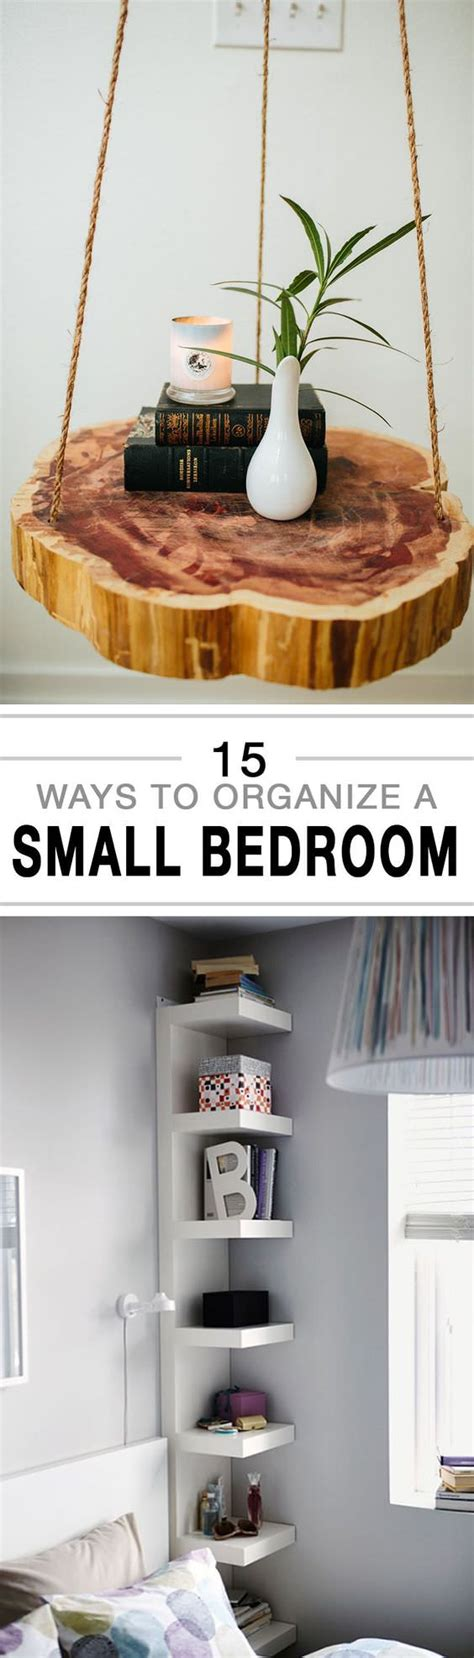 15 Ways To Organize A Small Bedroom  House Good